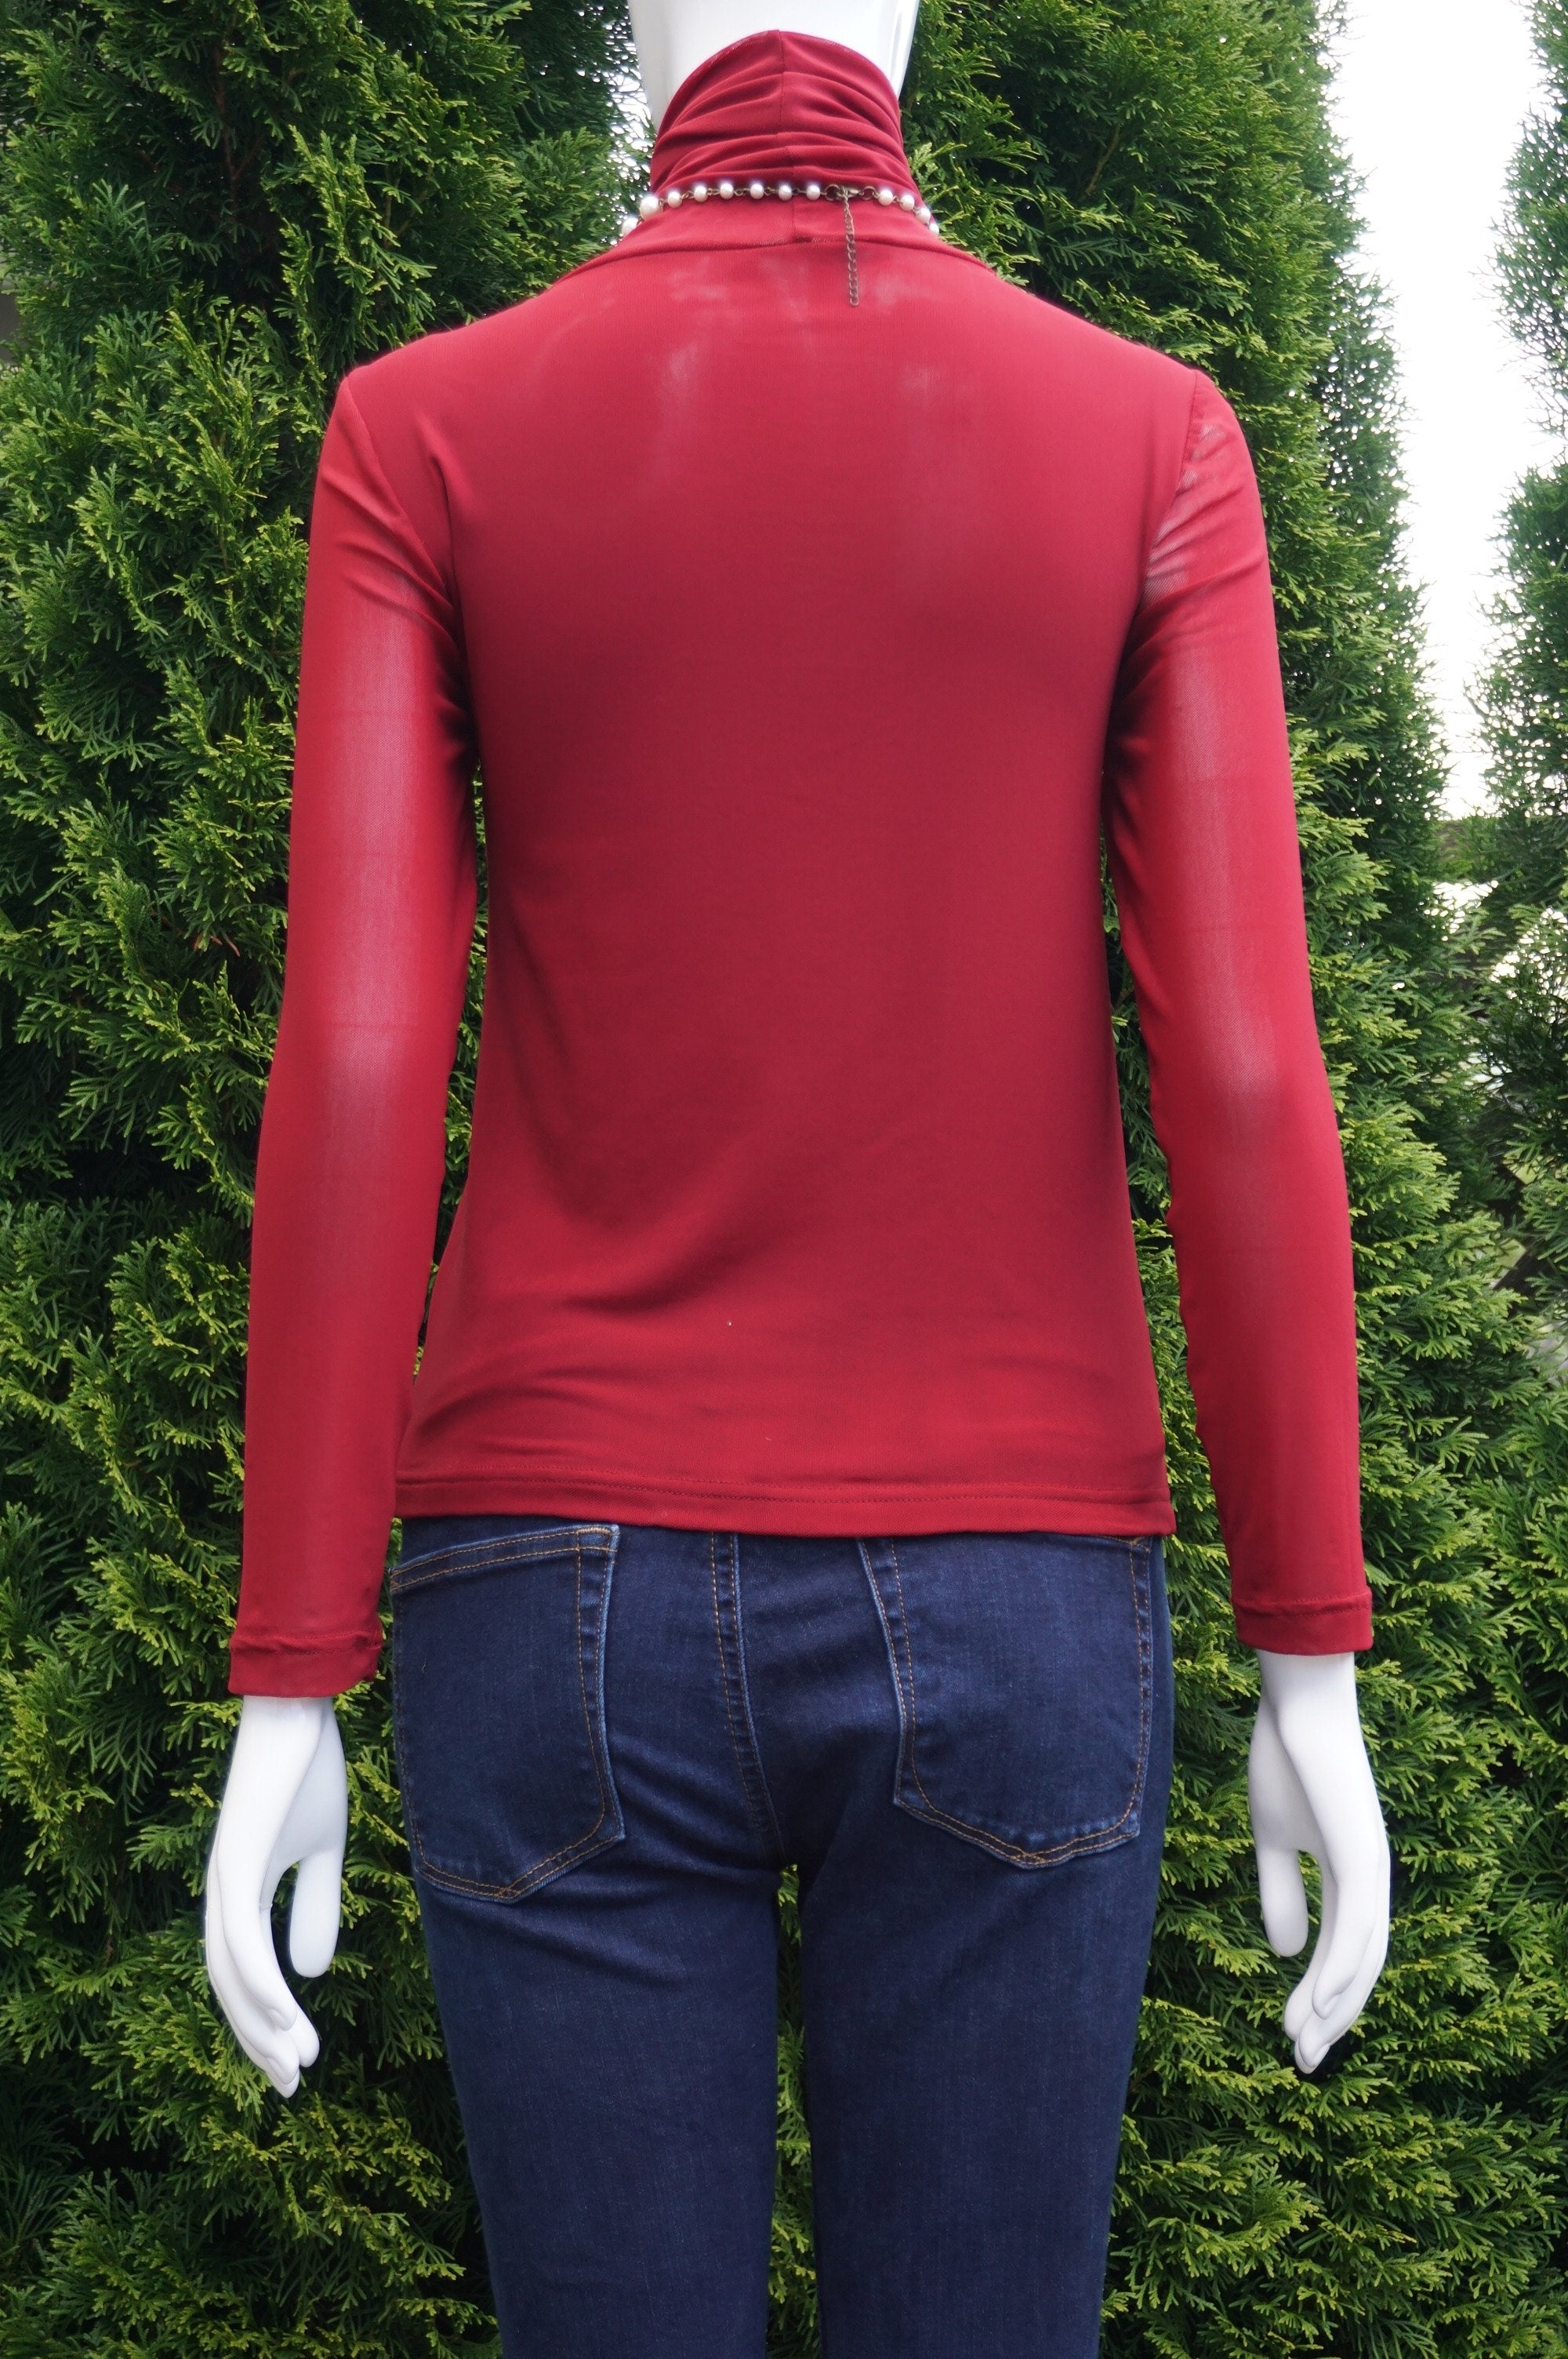 Bomovo Turtle Neck Mesh Sleeve top, Stretchy material. Mesh sleeves, Red, 100% Polyester, women's Tops, women's Red Tops, Bomovo women's Tops, red long sleeve top, red sweater, turtle neck blouse,